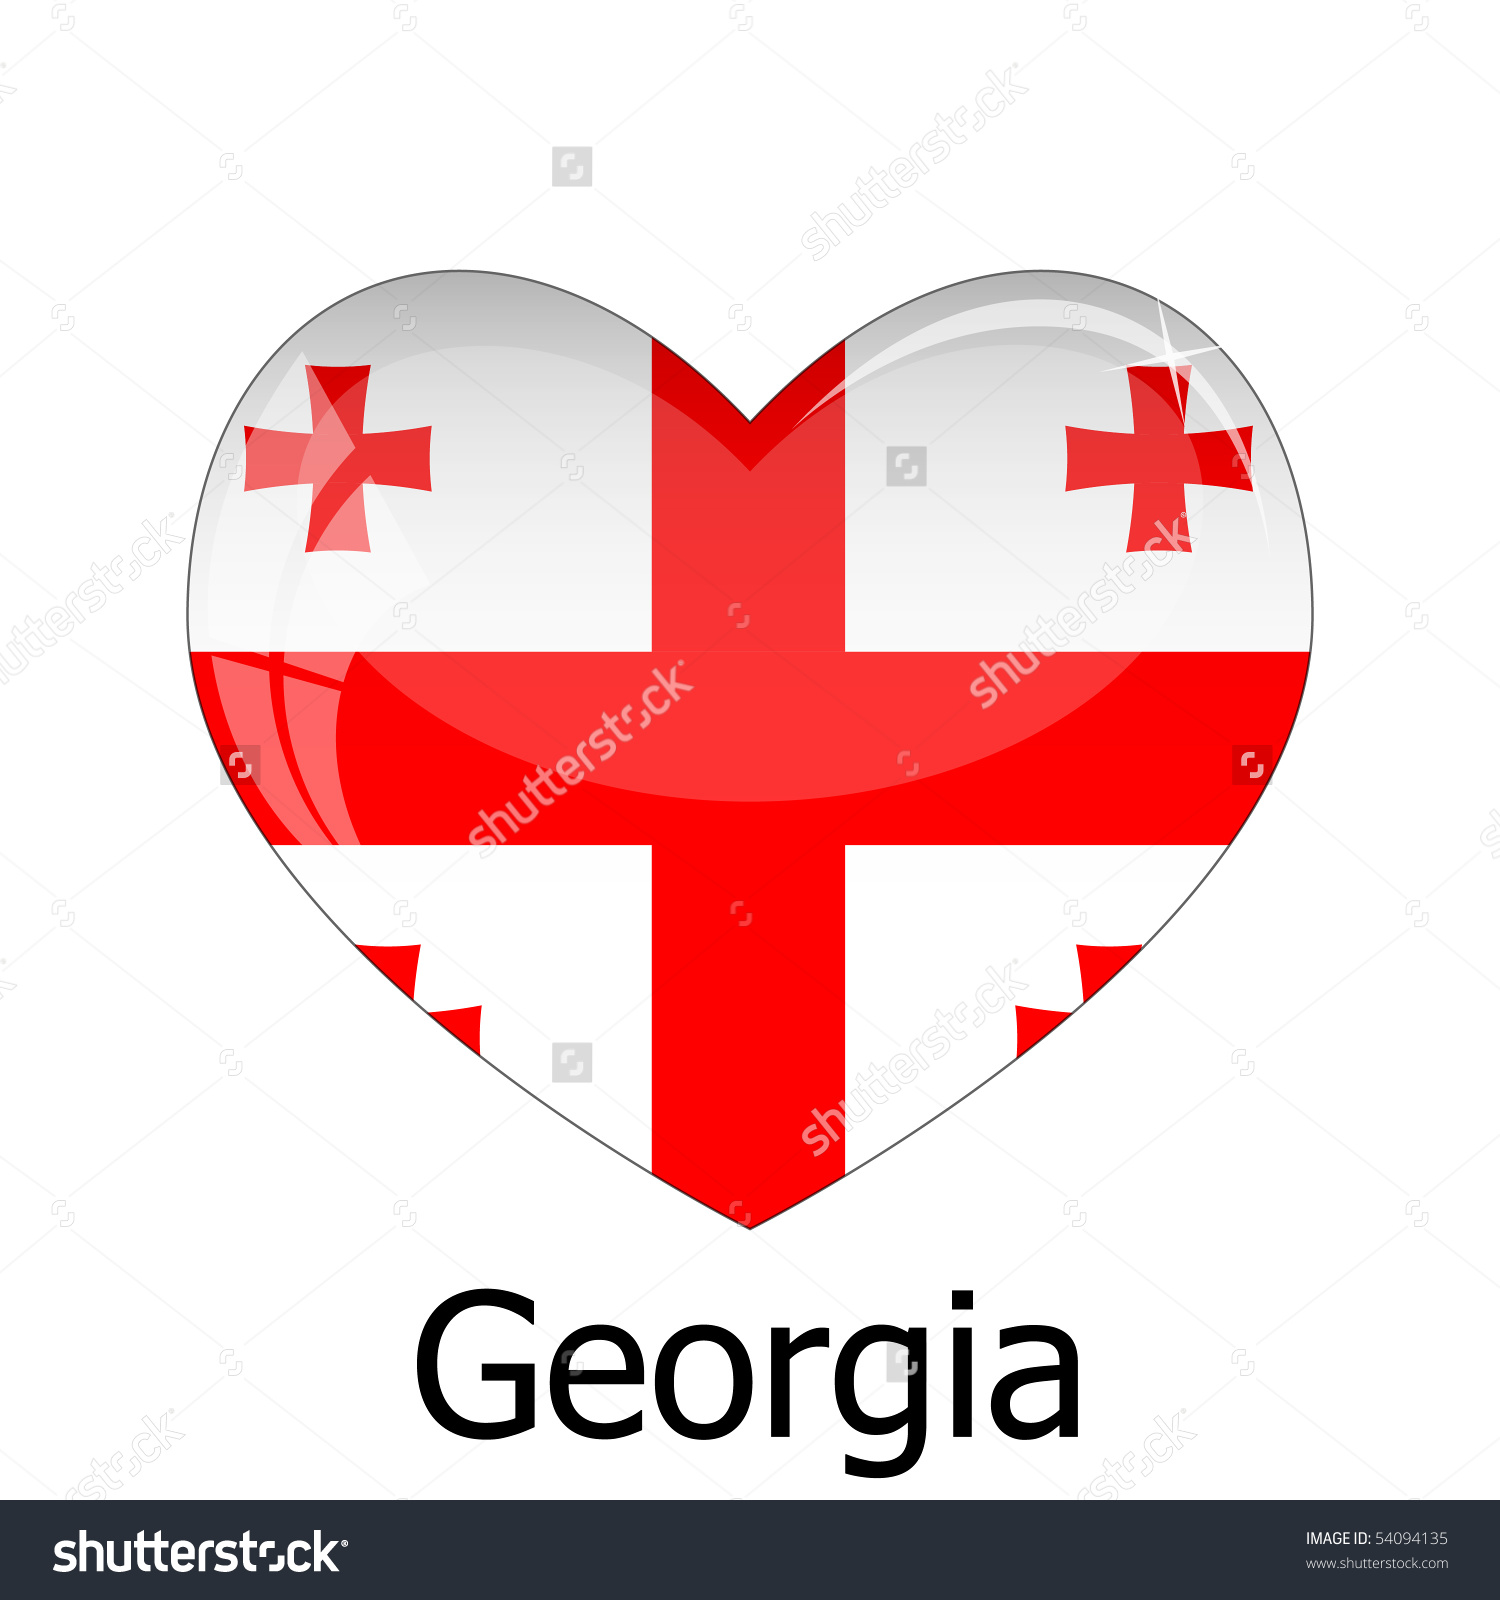 Flag Of Georgia Backgrounds, Compatible - PC, Mobile, Gadgets  1500x1600 px